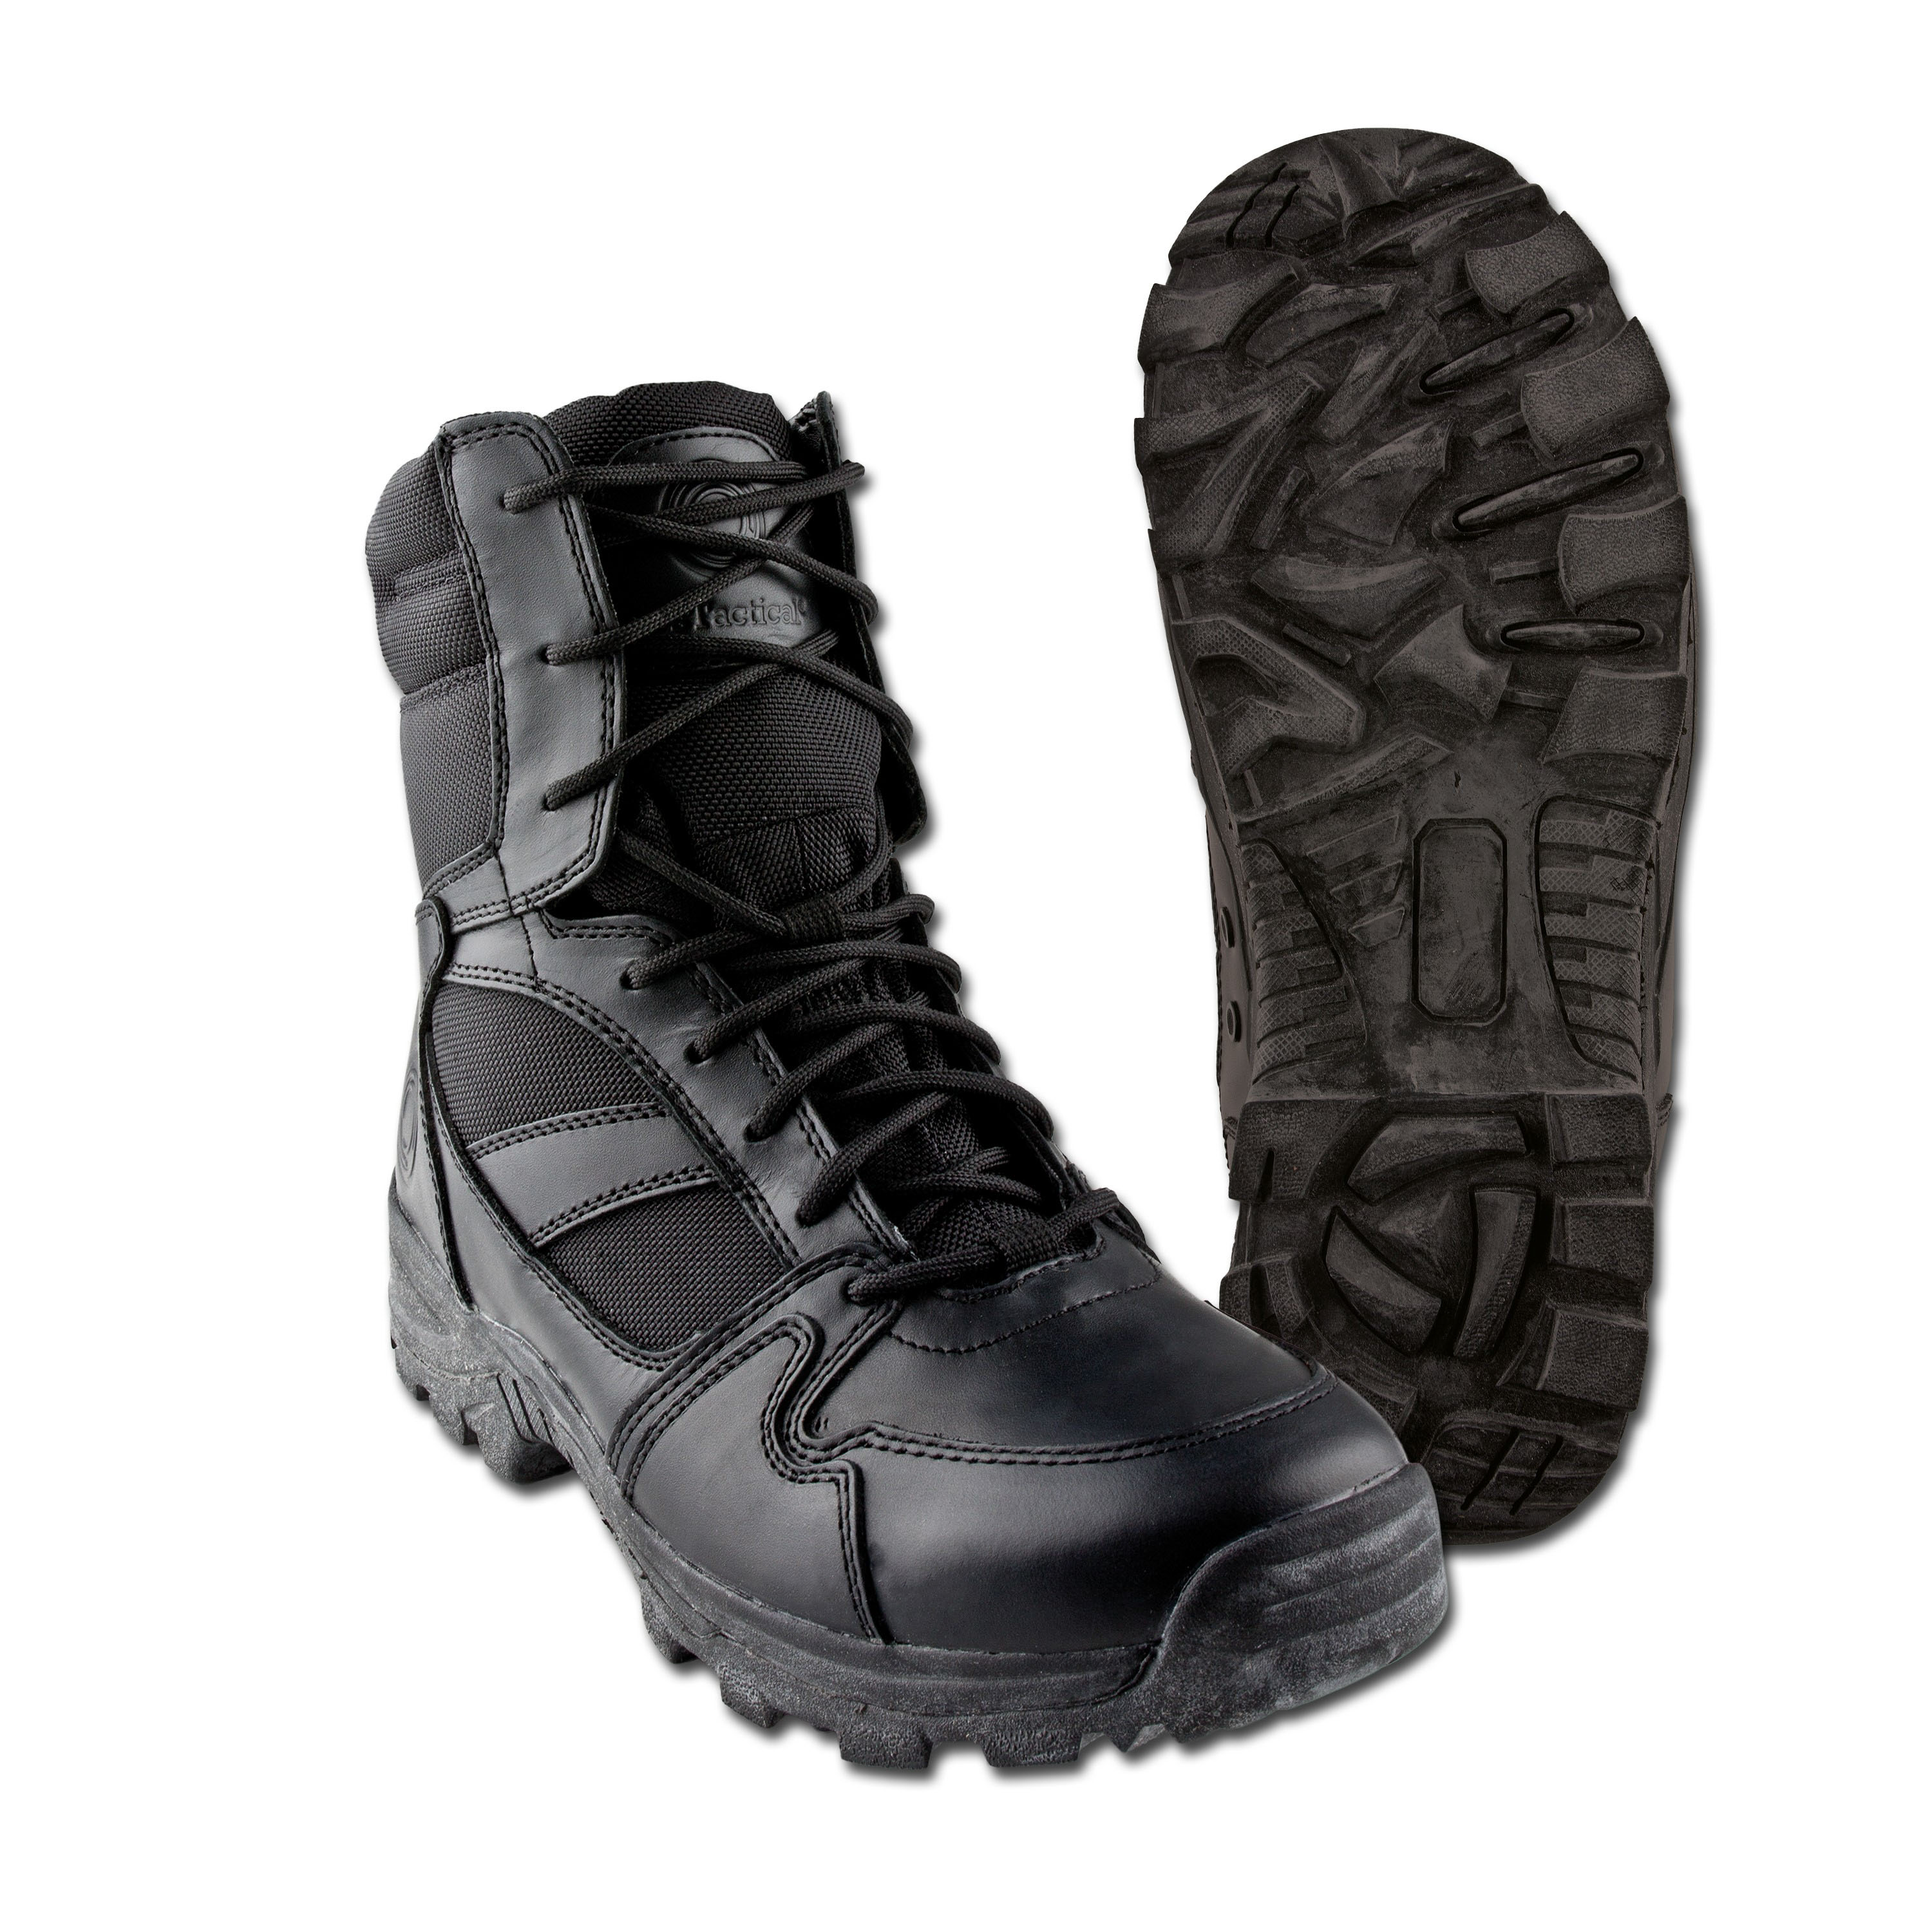 Stiefel OpsTactical Climate 6 Cordura